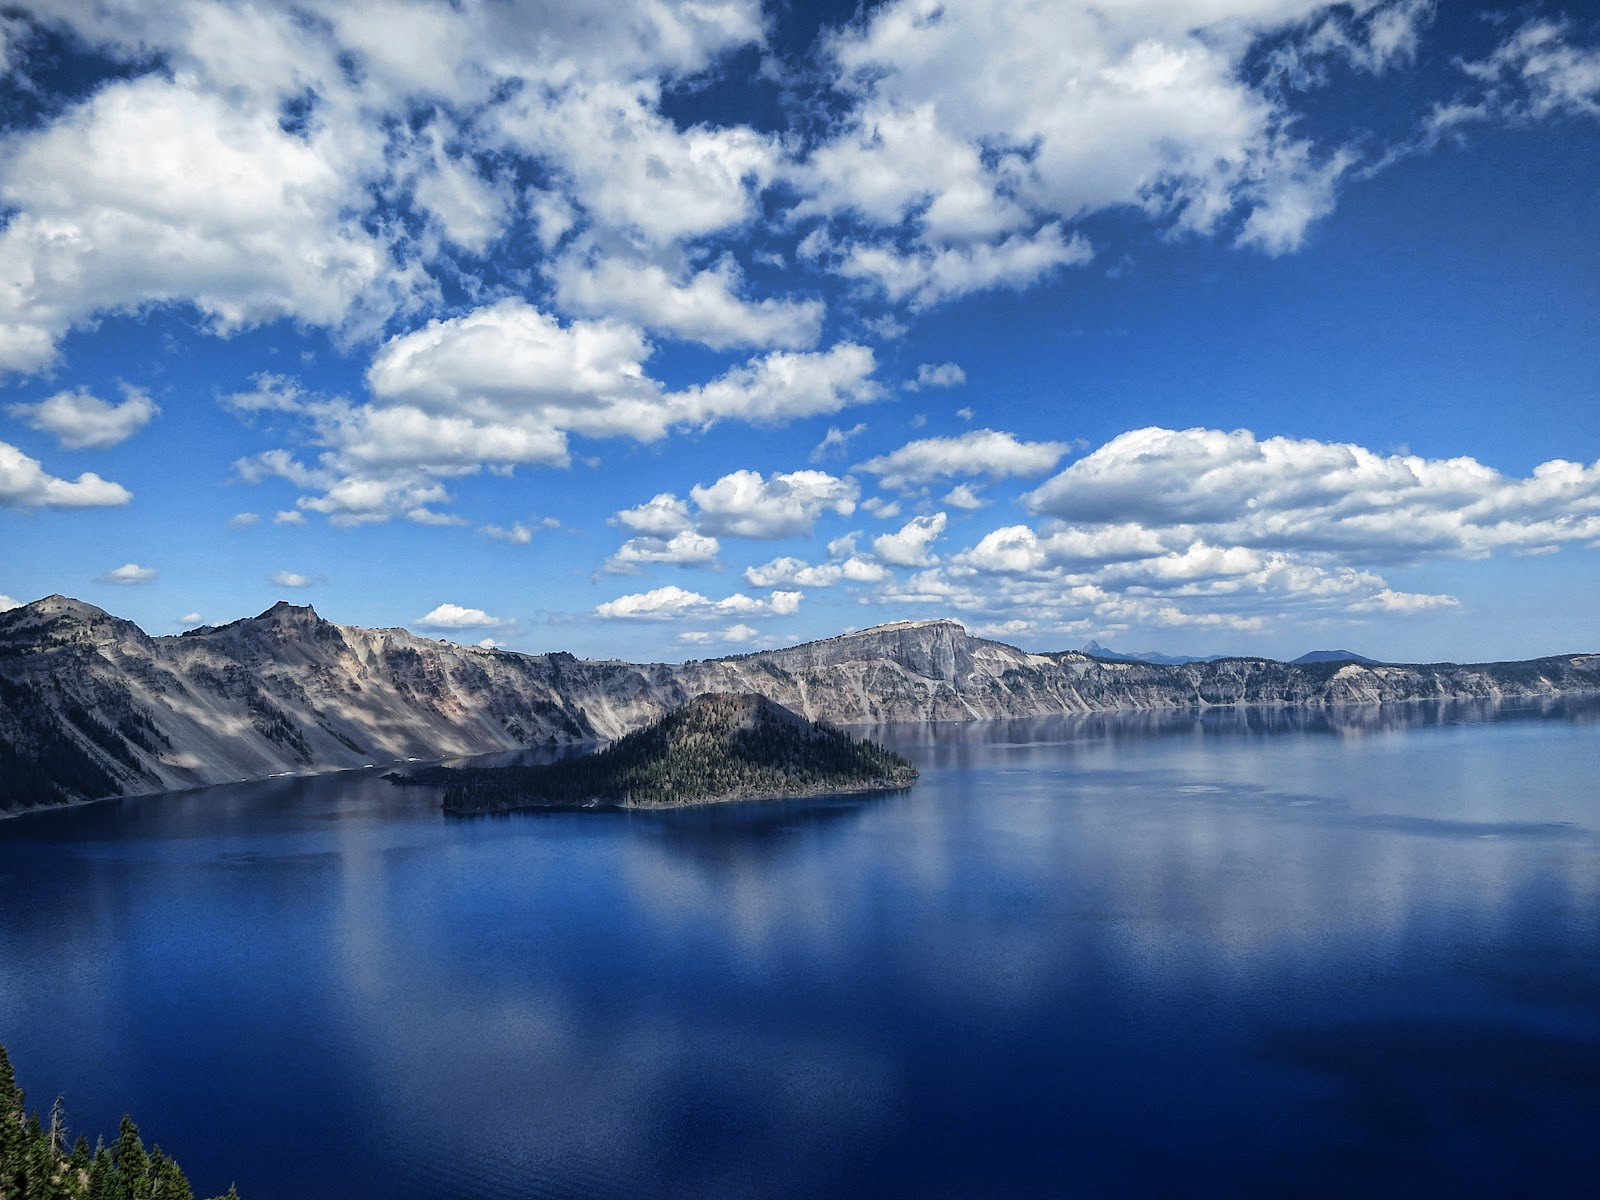 Streaming Together: Crater Lake National Park